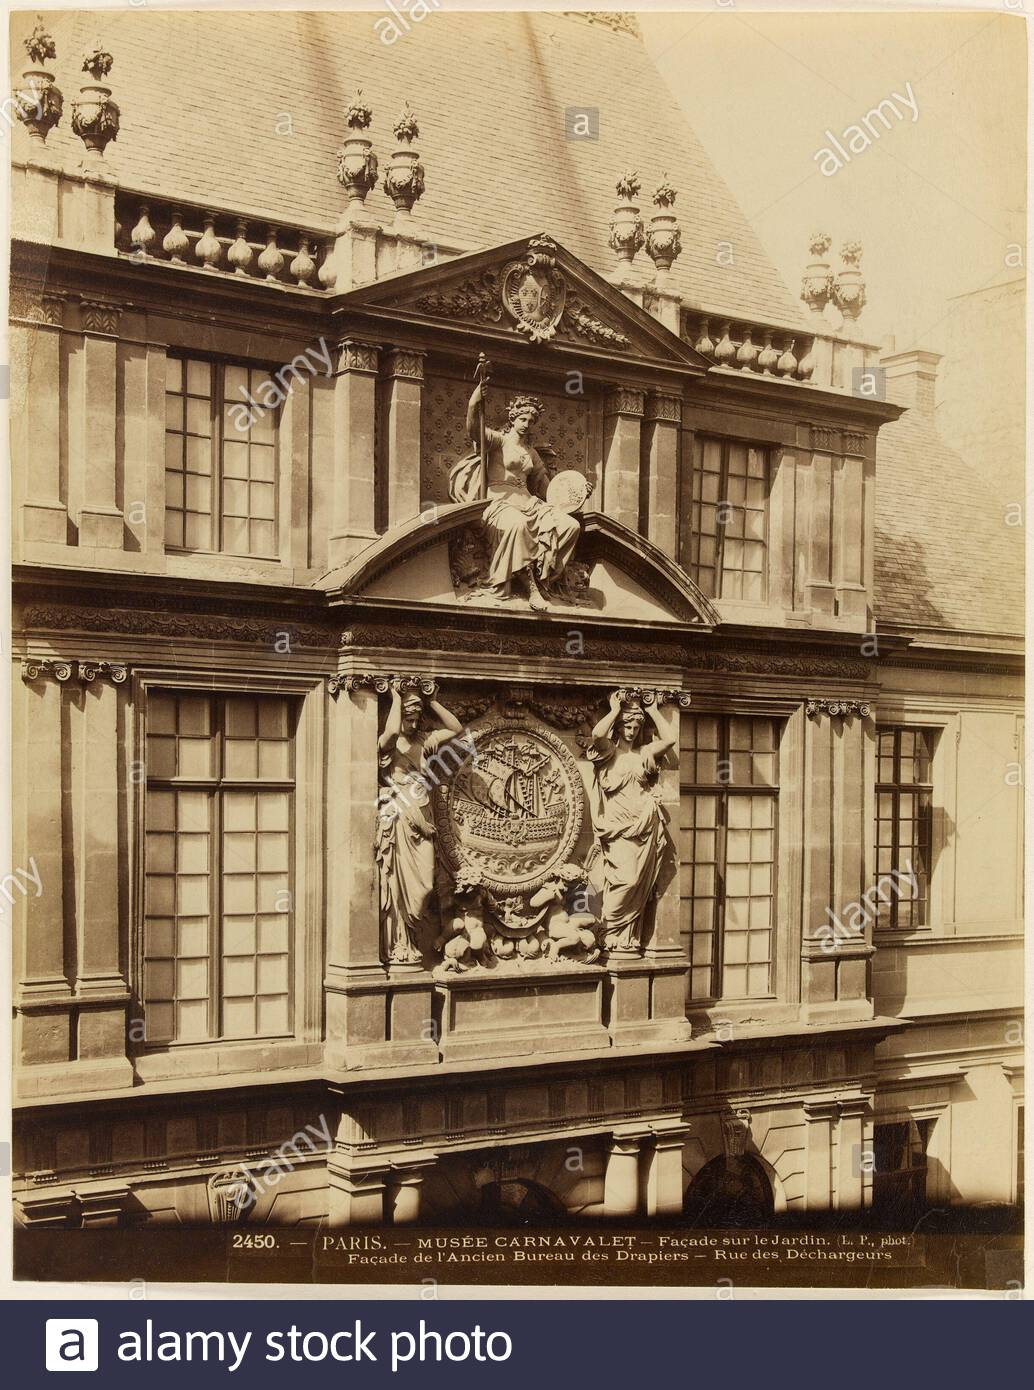 paris muse carnavalet front garden facade of the old office drapers street of unloaders carnavalet museum 3rd arrondissement paris front garden yard drapers from the old office drapers street of unloaders muse carnavalet paris iiime arr faade sur le jardin cour des drapiers provenant de lancien bureau des drapiers rue des dchargeurs photographie de louis pamard tirage sur papier albumin entre 1860 et 1890 paris muse carnavalet 2B8T3XE